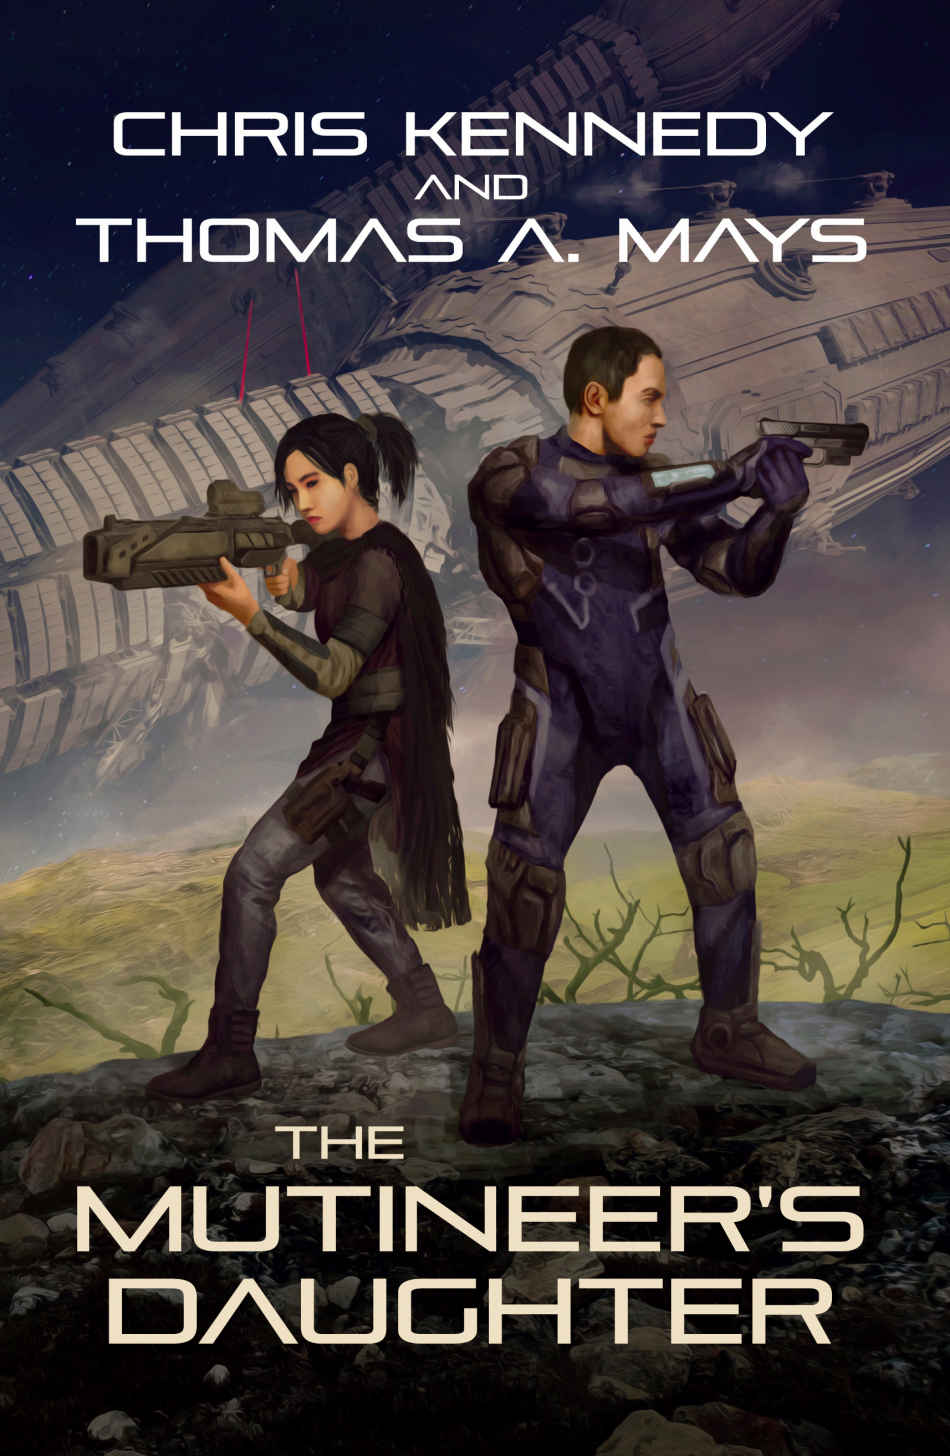 The Mutineers Daughter: A quite enjoyable little space rebel tale.